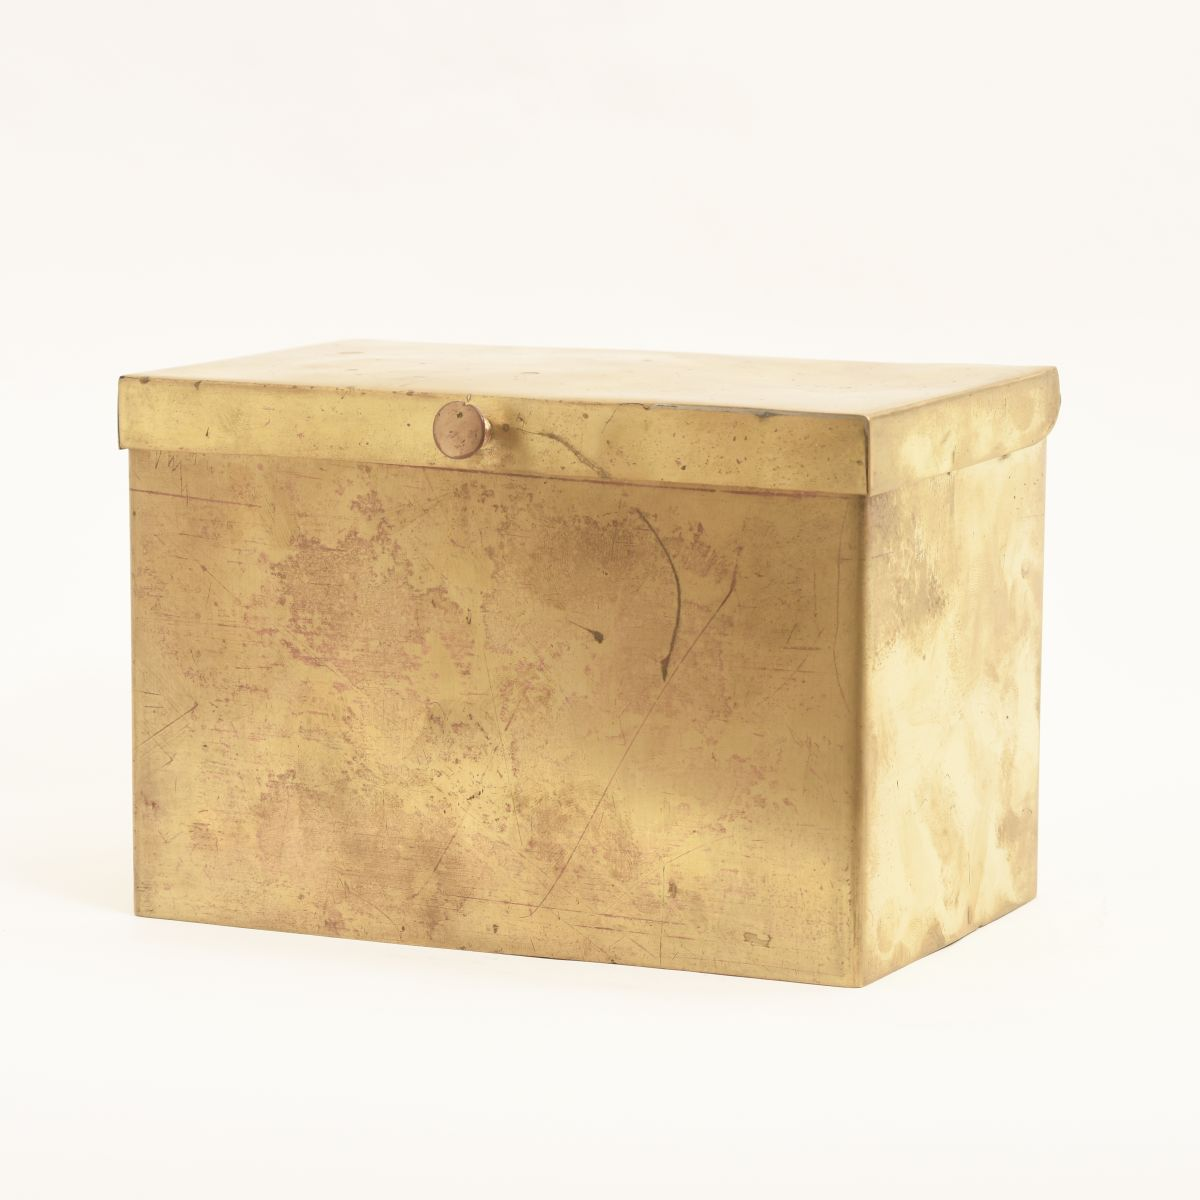 Tynell-Paavo-Brass-Box-Lidded